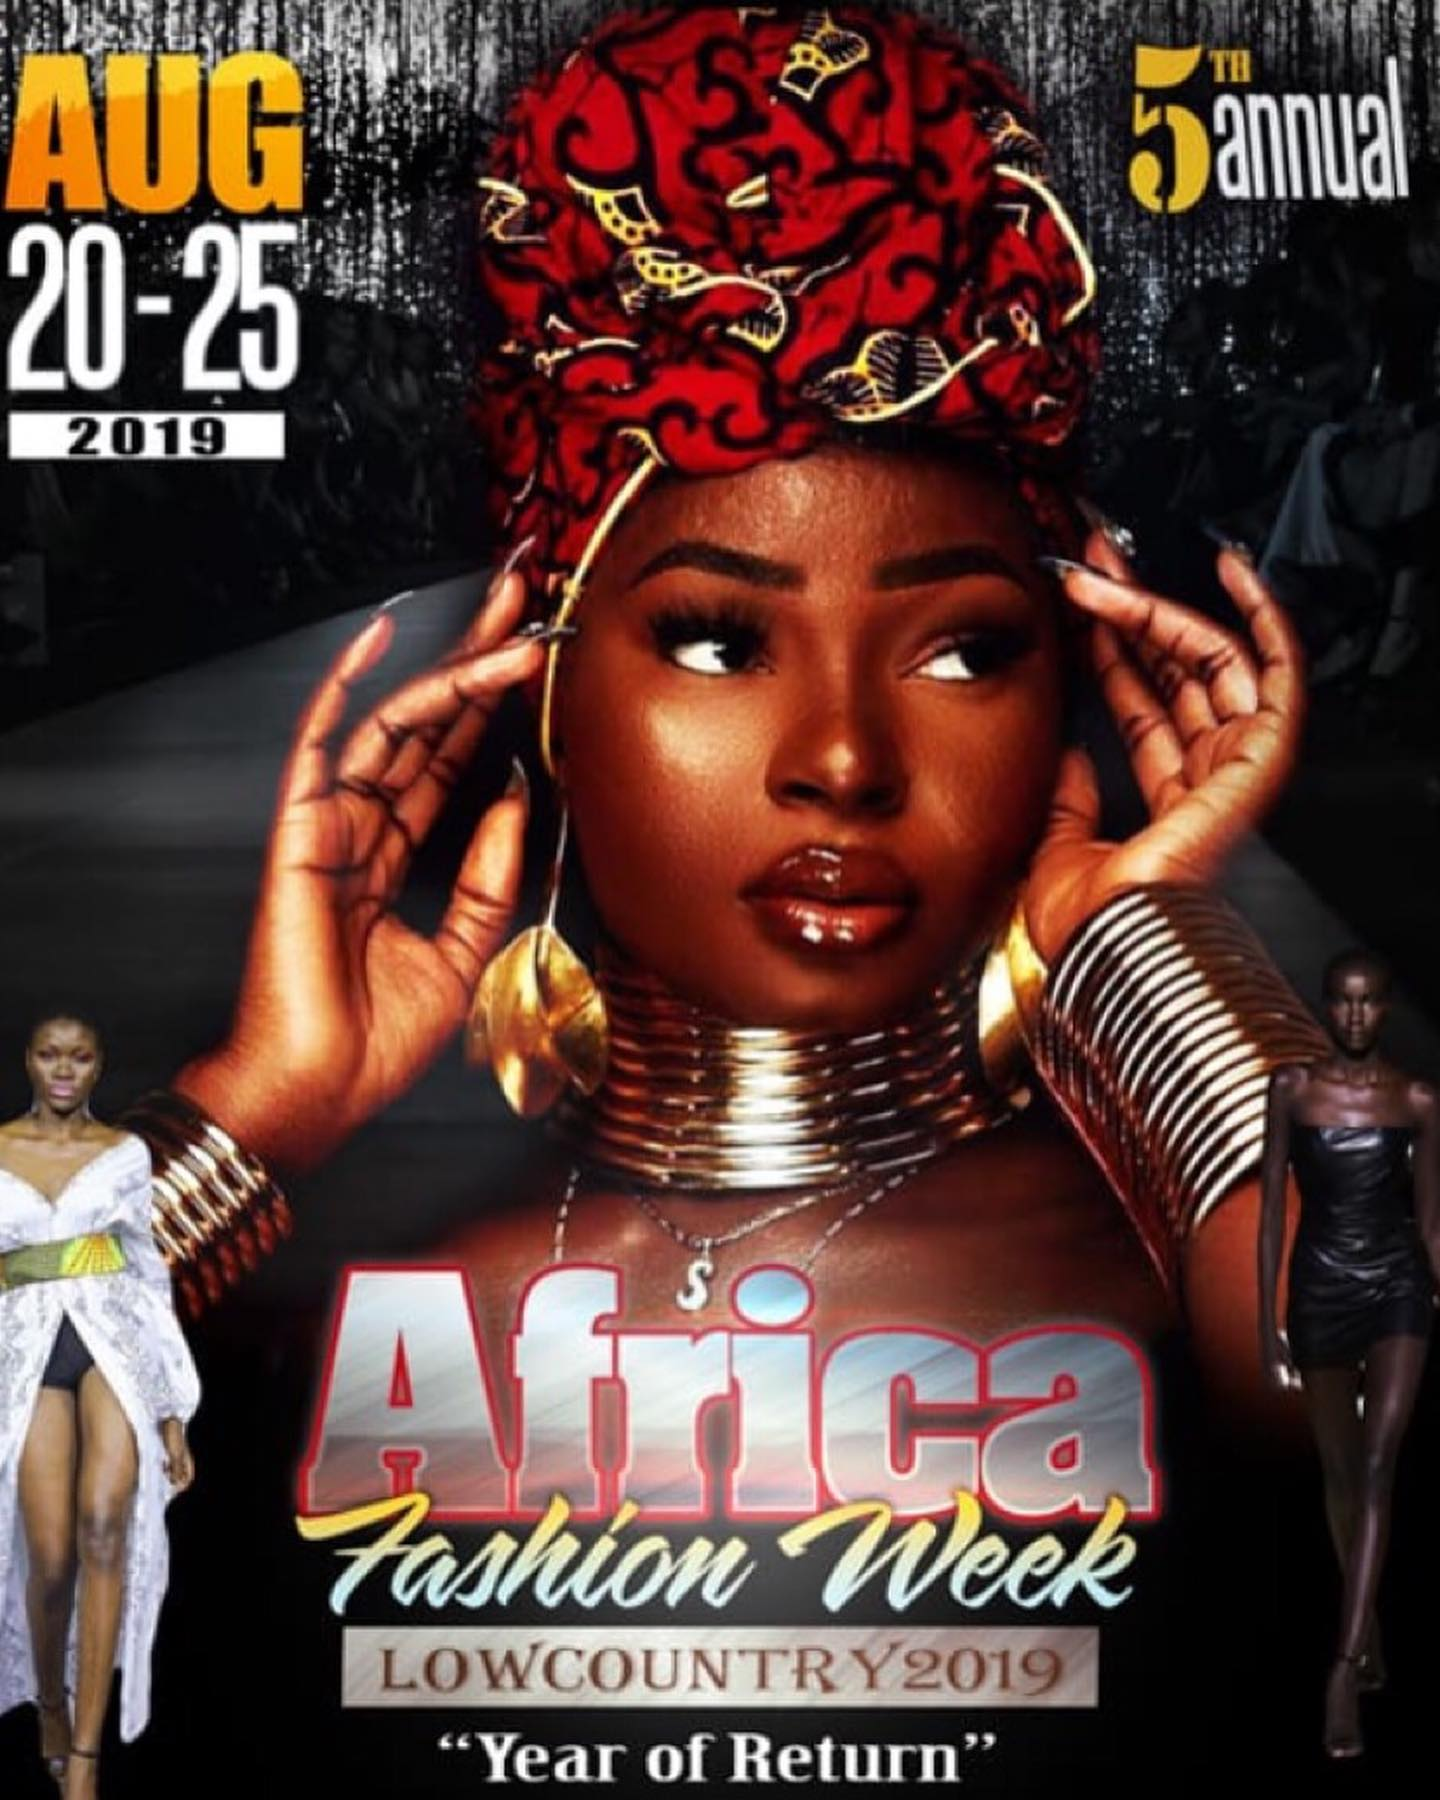 68325186_2470214676364412_6356210951338852352_o Southern Sensibility & Style: Africa Fashion Week Lowcountry 2019